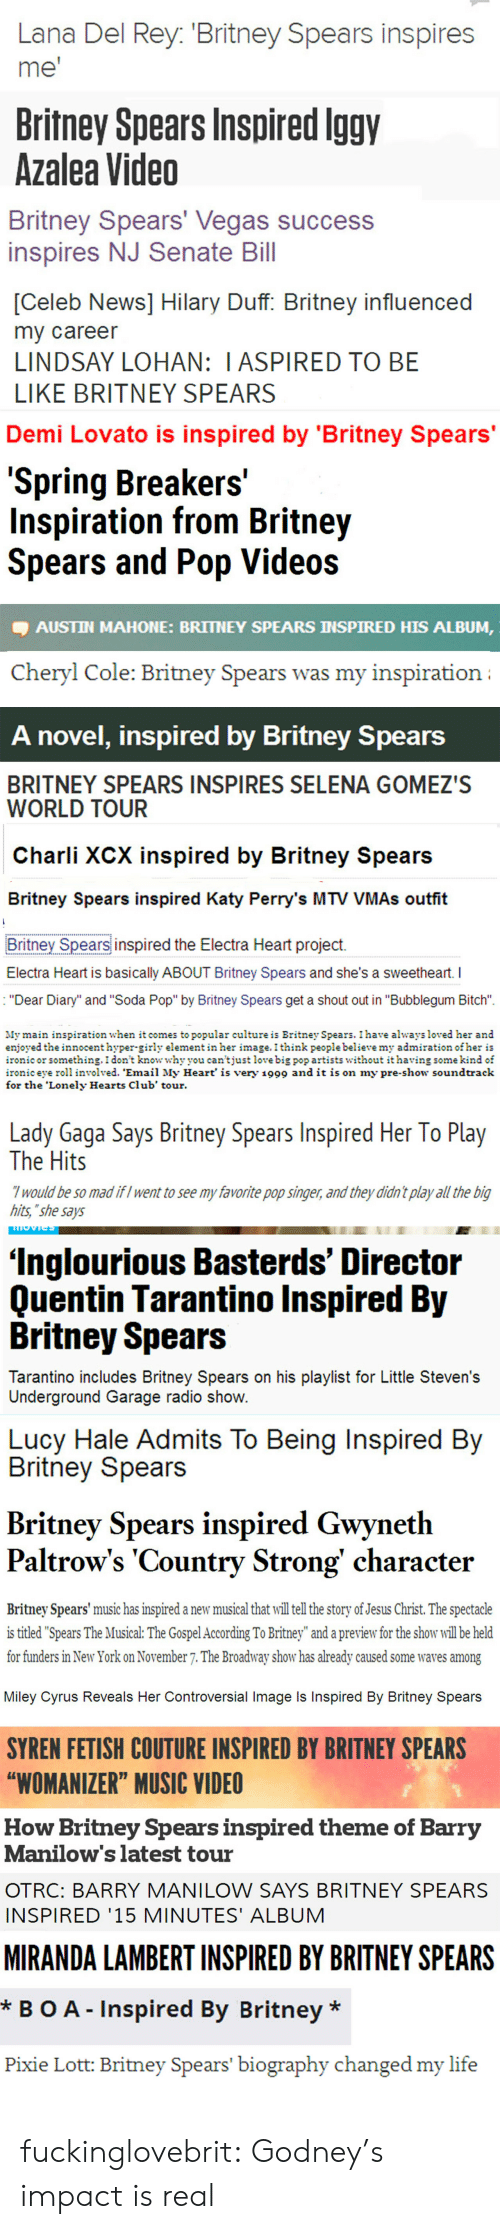 "Be Like, Bitch, and Britney Spears: Lana Del Rey. 'Britney Spears inspires  me'  Britney Spears Inspired lggv  Azalea Video  Britney Spears' Vegas success  inspires NJ Senate Bill  [Celeb News] Hilary Duff: Britney influenced  my career  LINDSAY LOHAN: I ASPIRED TO BE  LIKE BRITNEY SPEARS  Demi Lovato is inspired by 'Britney Spears  Spring Breakers'  Inspiration from Britney  Spears and Pop Videos  AUSTIN MAHONE: BRITNEY SPEARS INSPIRED HIS ALBUM,  Cheryl Cole: Britney Spears was my inspiration   A novel, inspired by Britney SpearS  BRITNEY SPEARS INSPIRES SELENA GOMEZ'S  WORLD TOUR  Charli XCX inspired by Britney Spears  Britney Spears inspired Katy Perry's MTV VMAs outfit  Britney Spears inspired the Electra Heart project.  Electra Heart is basically ABOUT Britney Spears and she's a sweetheart.  : ""Dear Diary"" and ""Soda Pop"" by Britney Spears get a shout out in ""Bubblegum Bitch""  My main inspiration when it comes to popular culture is Britney Spears. 1 have alwaysloved her and  enjoyed the innocenthyper-girly elementin he imagethink people believe my admiration ofher is  onicor something.1don't know whvvou can'tiust love big pop artists without it having somekind of  ironiceye rl involved. 'Email My Heart' is very 1999 and it is on my pre-show soundtrack  for the 'Lonely Hearts Club' tour  Lady Gaga Says Britney Spears Inspired Her lo Play  The Hits  7 would be so mad ifI went to see my favorite pop singer, and they didn t play all the big  hits, ""she says  'Inglourious Basterds' Director  Ouentin Tarantino Inspired Bv  Britney Spears  Tarantino includes Britney Spears on his playlist for Little Steven's  Underground Garage radio shoW   Lucy Hale Admits To Being Inspired Bv  Britney Spears  Britney Spears inspired Gwyneth  Paltrow's 'Country Strong' character  Britney Spears' music has inspired a new musical that will tell the story of Jesus Christ. The spectacle  is titled ""Spears The Musical: The Gospel According To Britney"" and a preview for the show will be held  tor funders in New York ves among  on November 7. The Broadway show has already caused some wa  Miley Cyrus Reveals Her Controversial Image Is Inspired By Britney Spears  SYREN FETISH COUTURE INSPIRED BY BRITNEY SPEARS  ""WOMANIZER"" MUSIC VIDEO  How Britney Spears inspired theme of Barryy  Manilow's latest tour  OTRC: BARRY MANILOW SAYS BRITNEY SPEARS  INSPIRED '15 MINUTES' ALBUM  MIRANDA LAMBERT INSPIRED BY BRITNEY SPEARS  *BO A Inspired By Britney *  Pixie Lott: Britney Spears' biography changed my life fuckinglovebrit:  Godney's impact is real"